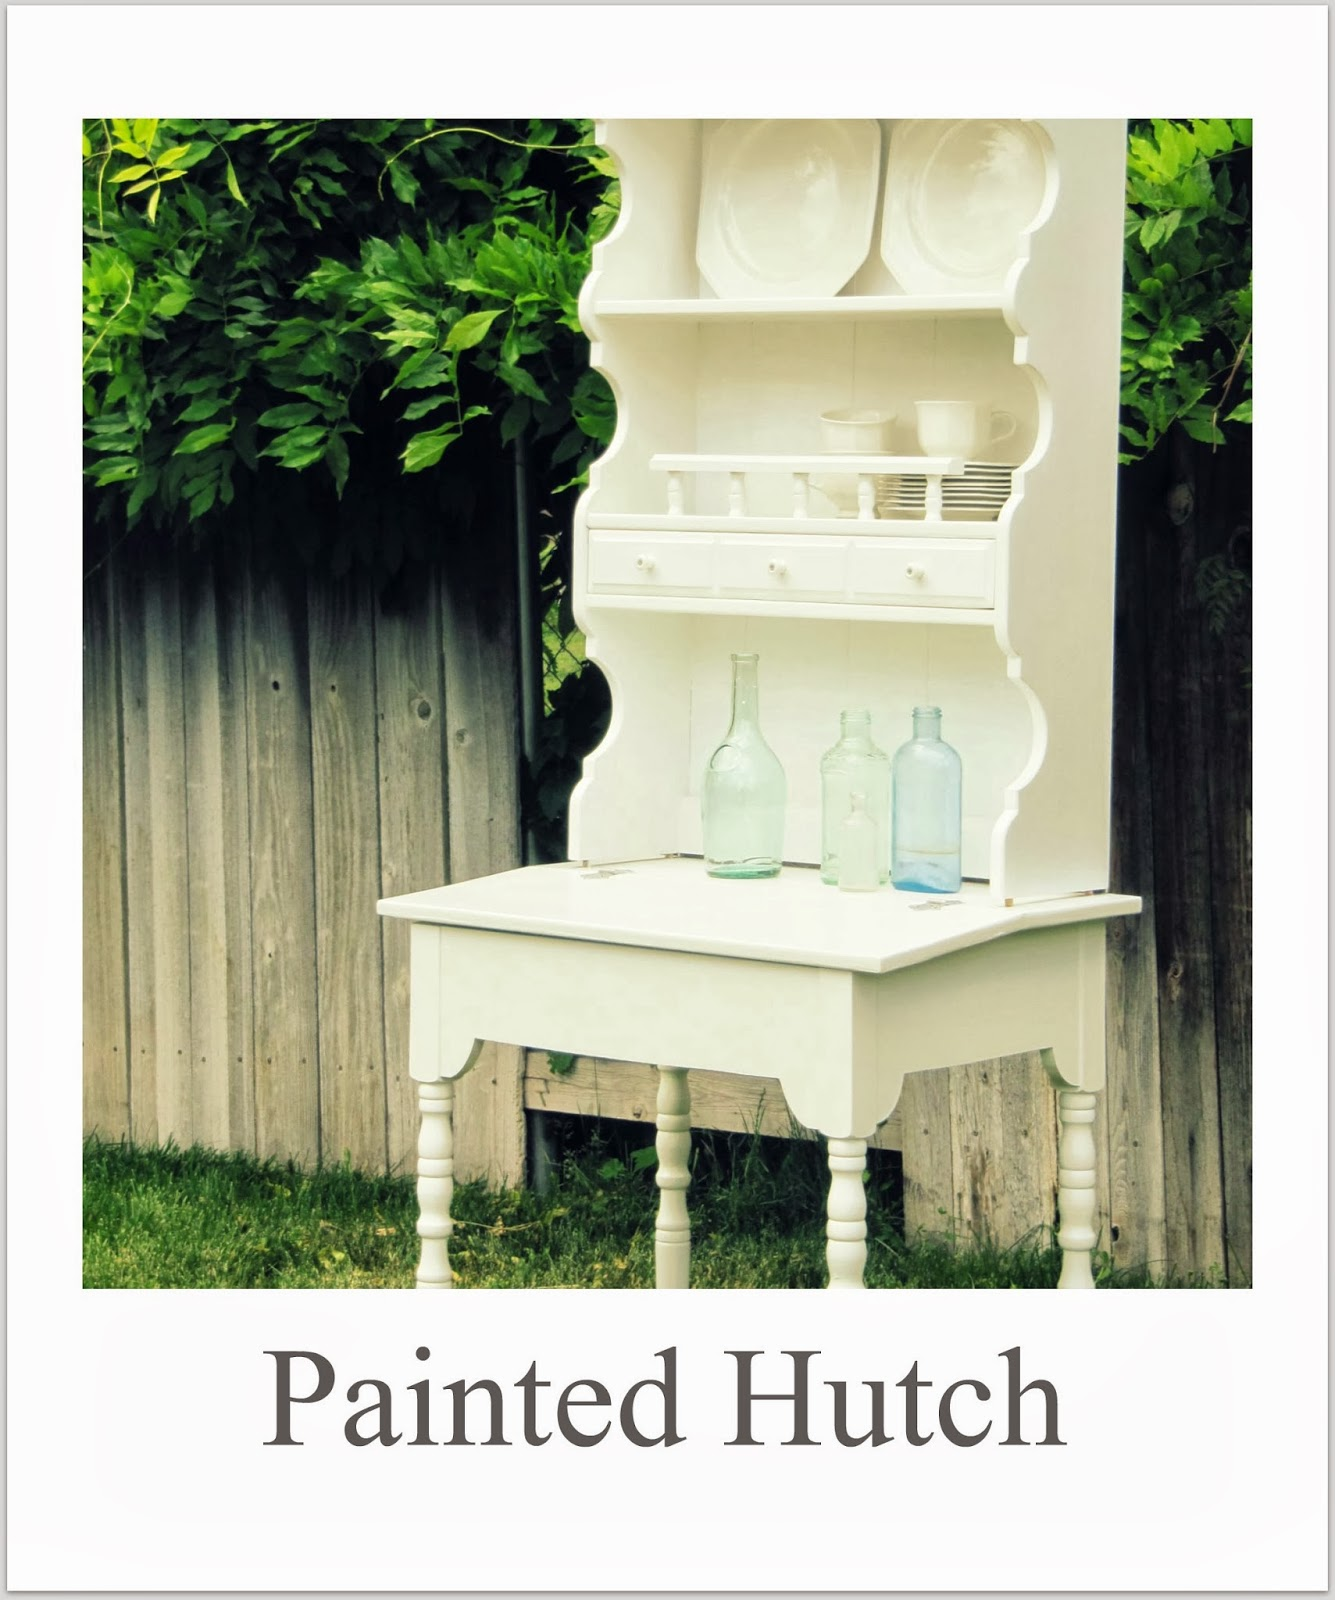 http://thewickerhouse.blogspot.com/2010/06/painted-hutch.html